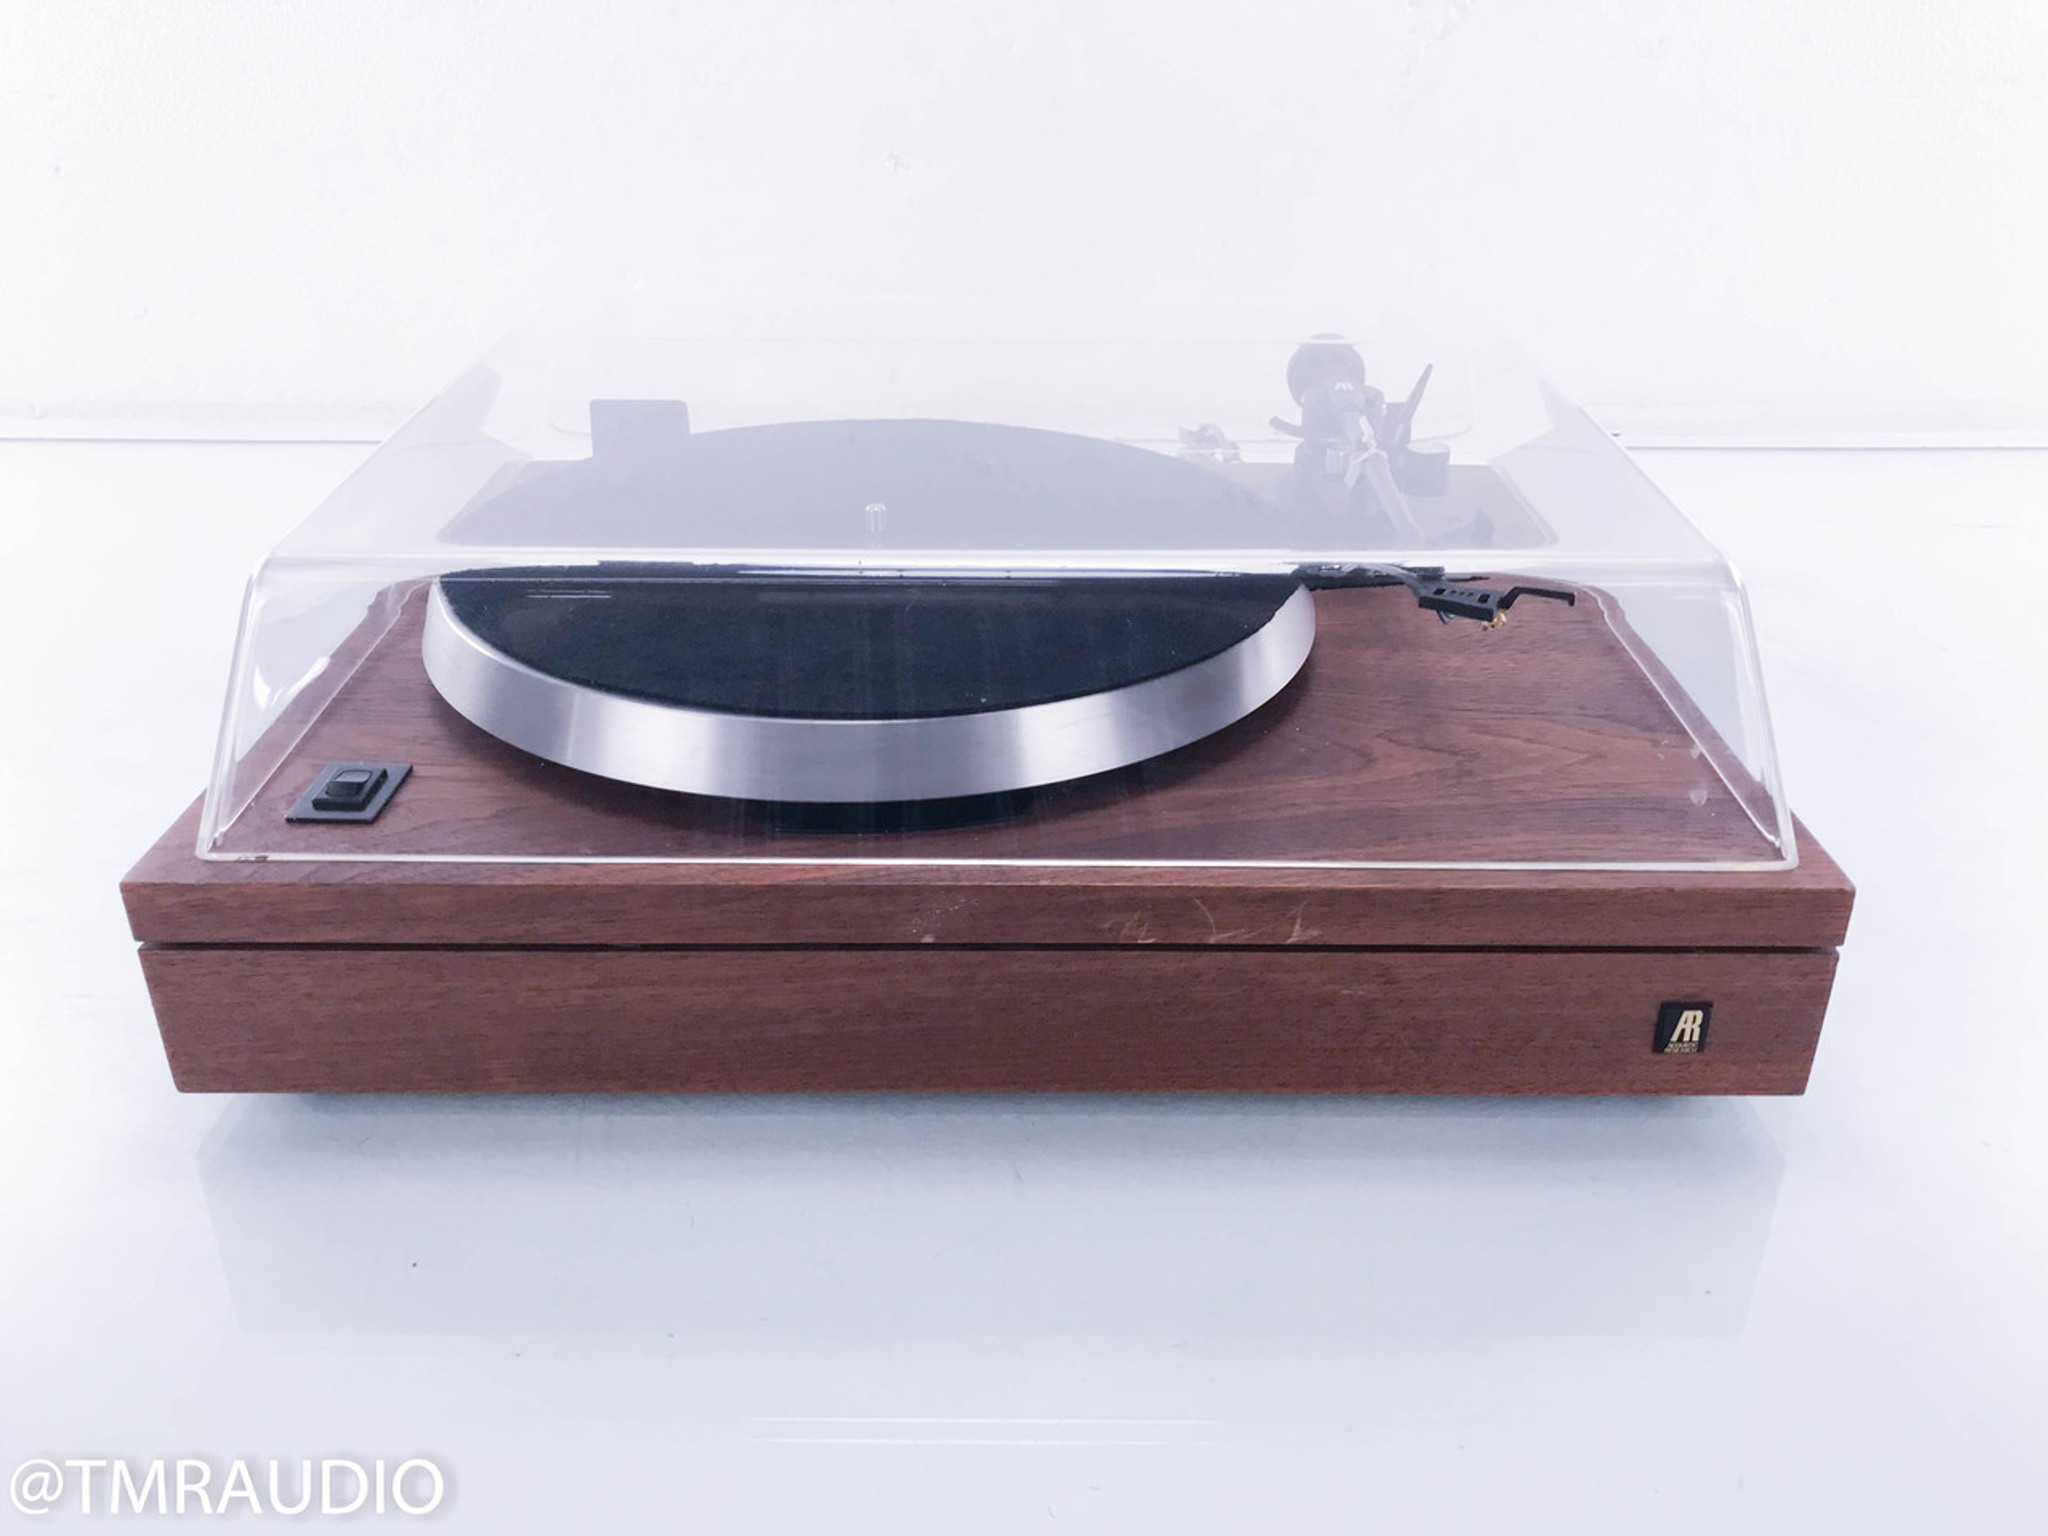 Acoustic Research EB101 Vintage Turntable